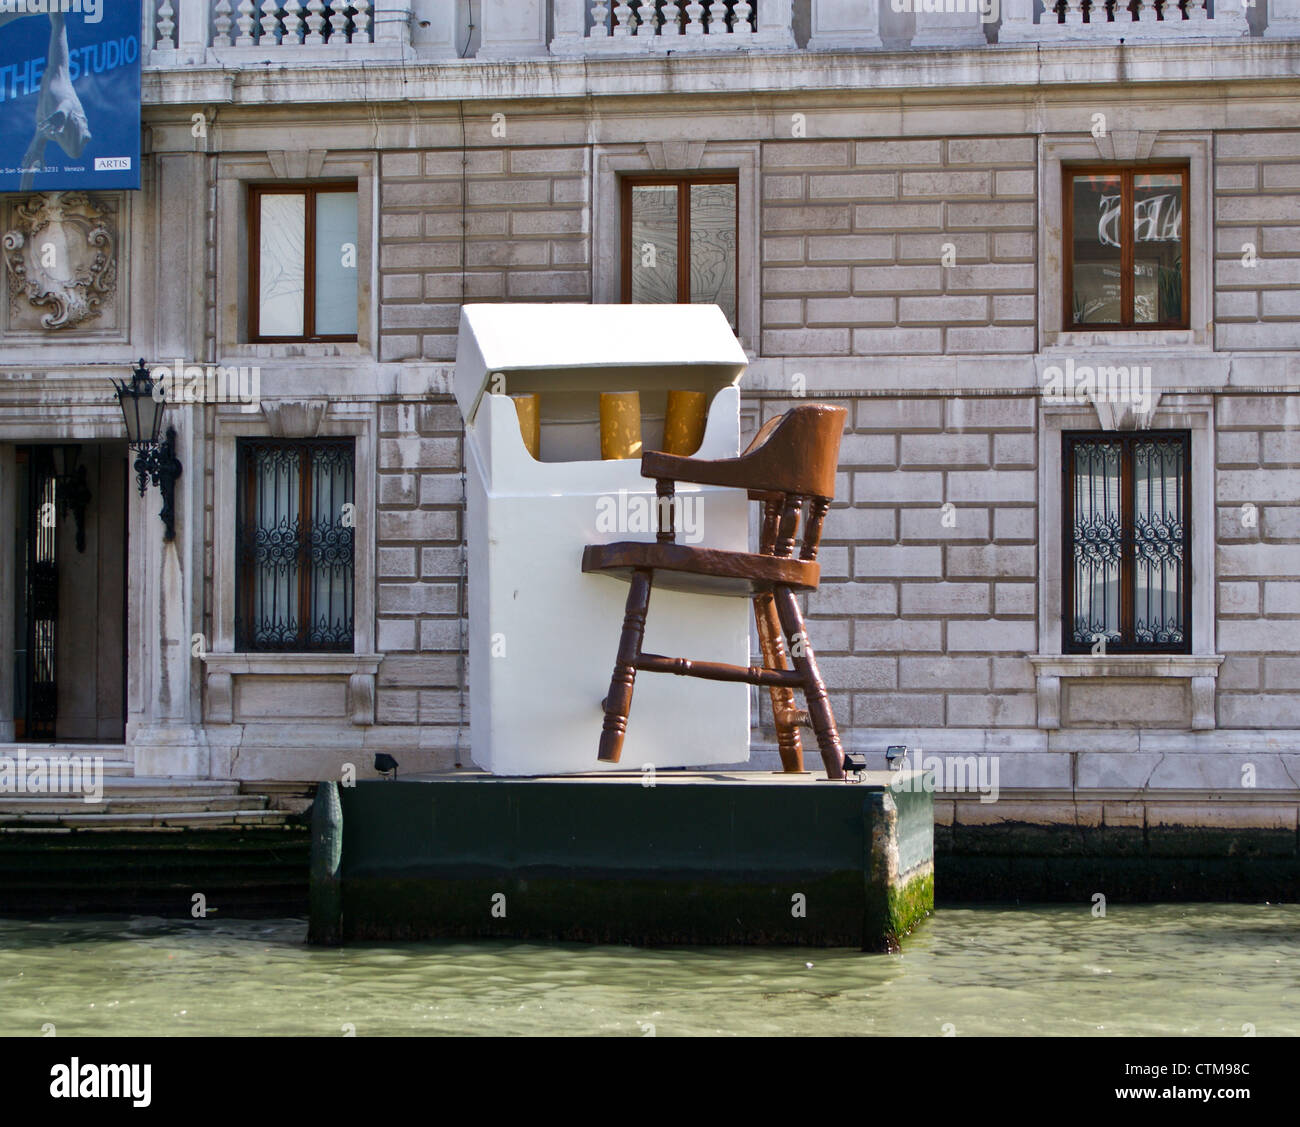 a-sculpture-of-an-outsized-chair-and-pac